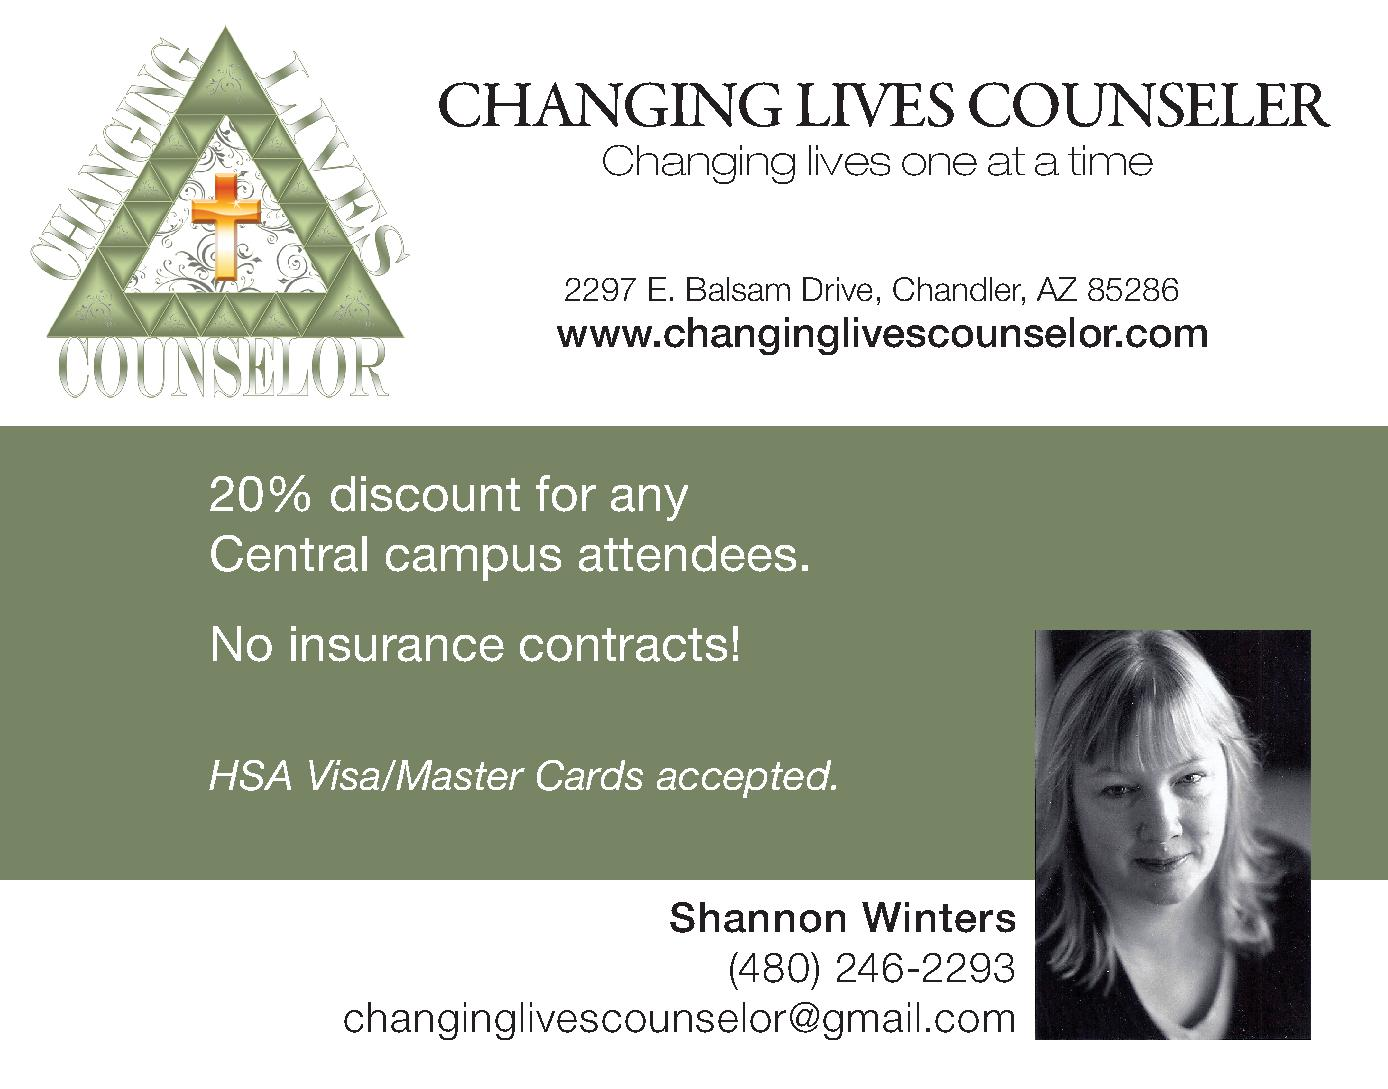 Changing Lives Counselor